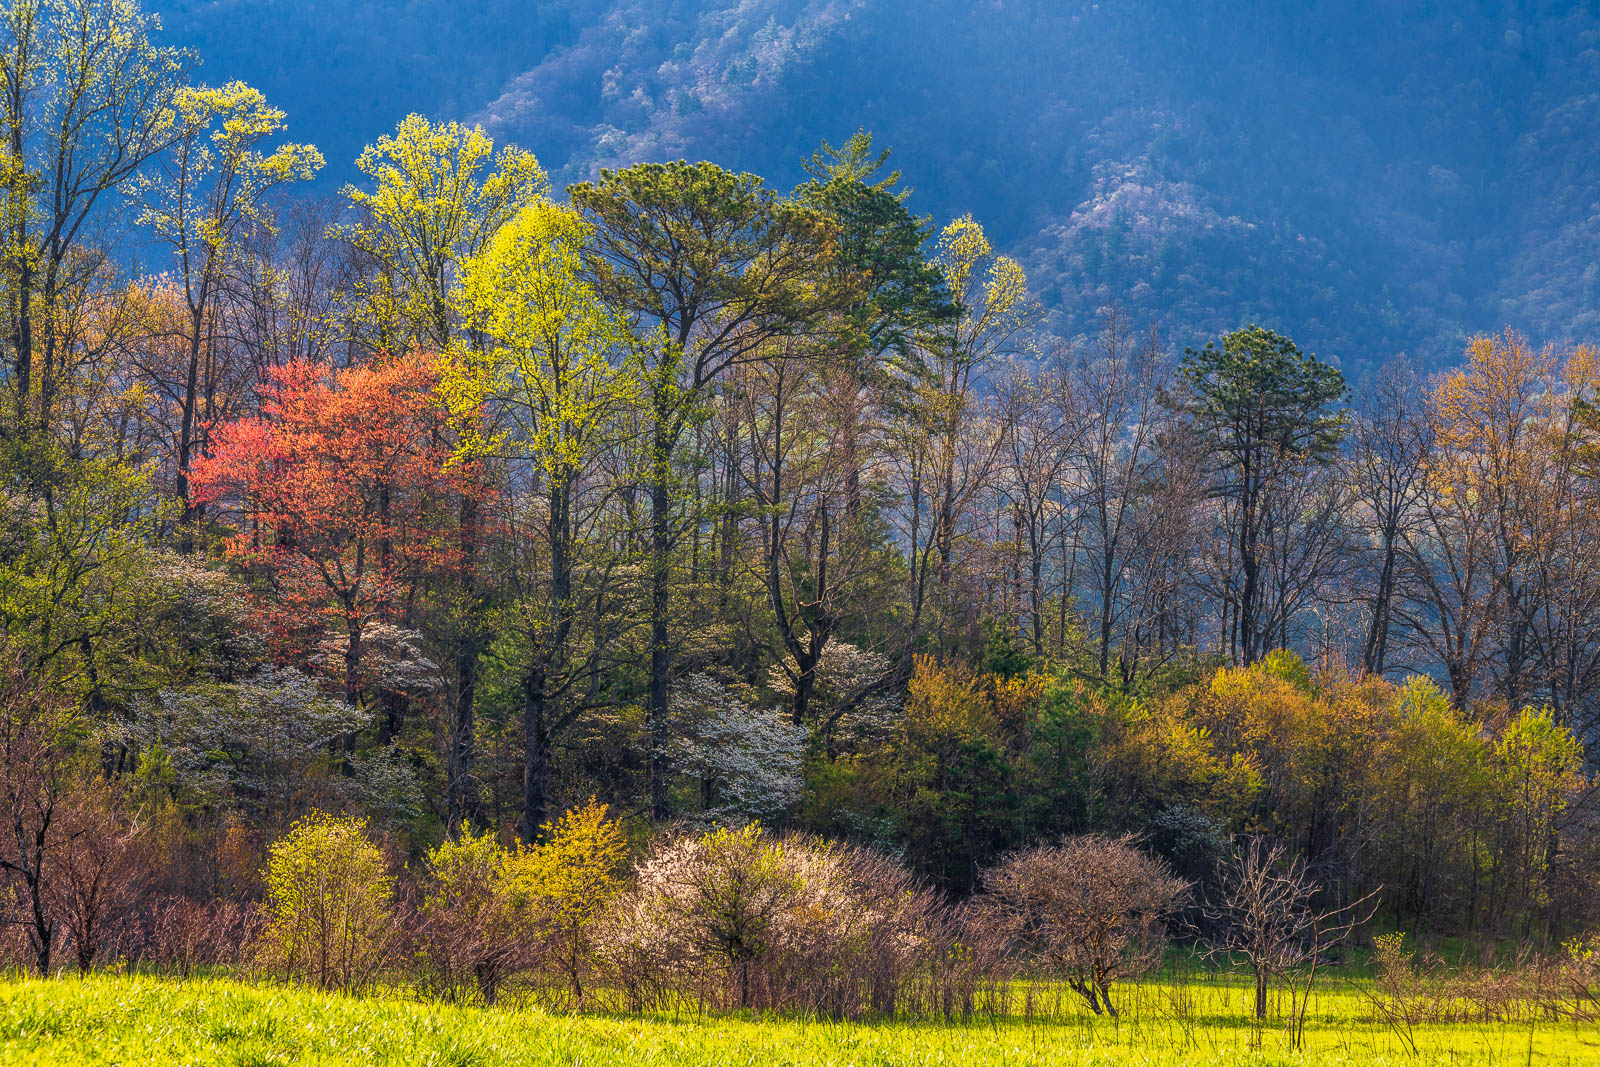 Spring foliage in Cades Cove.